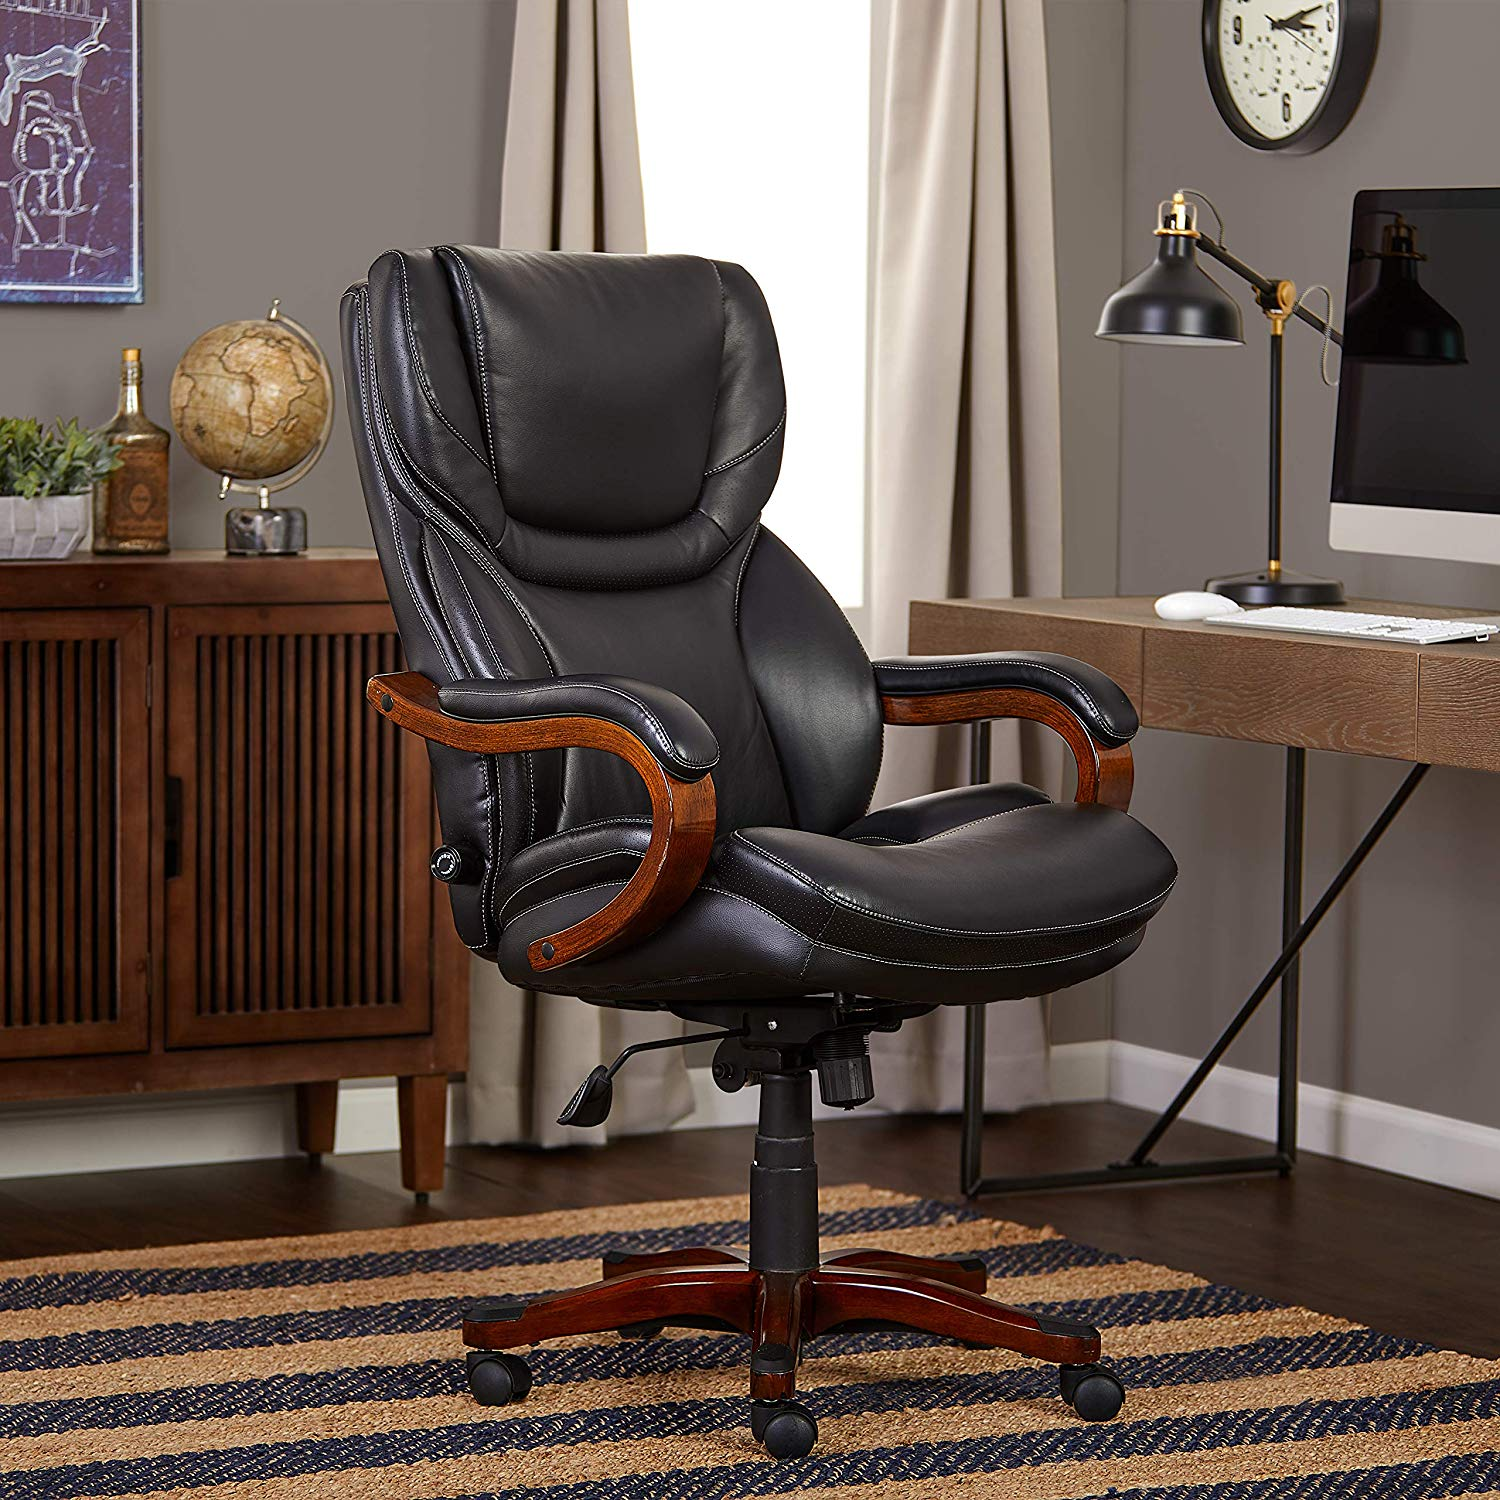 Top 37 Best Executive Office Chair in 37 Reviews